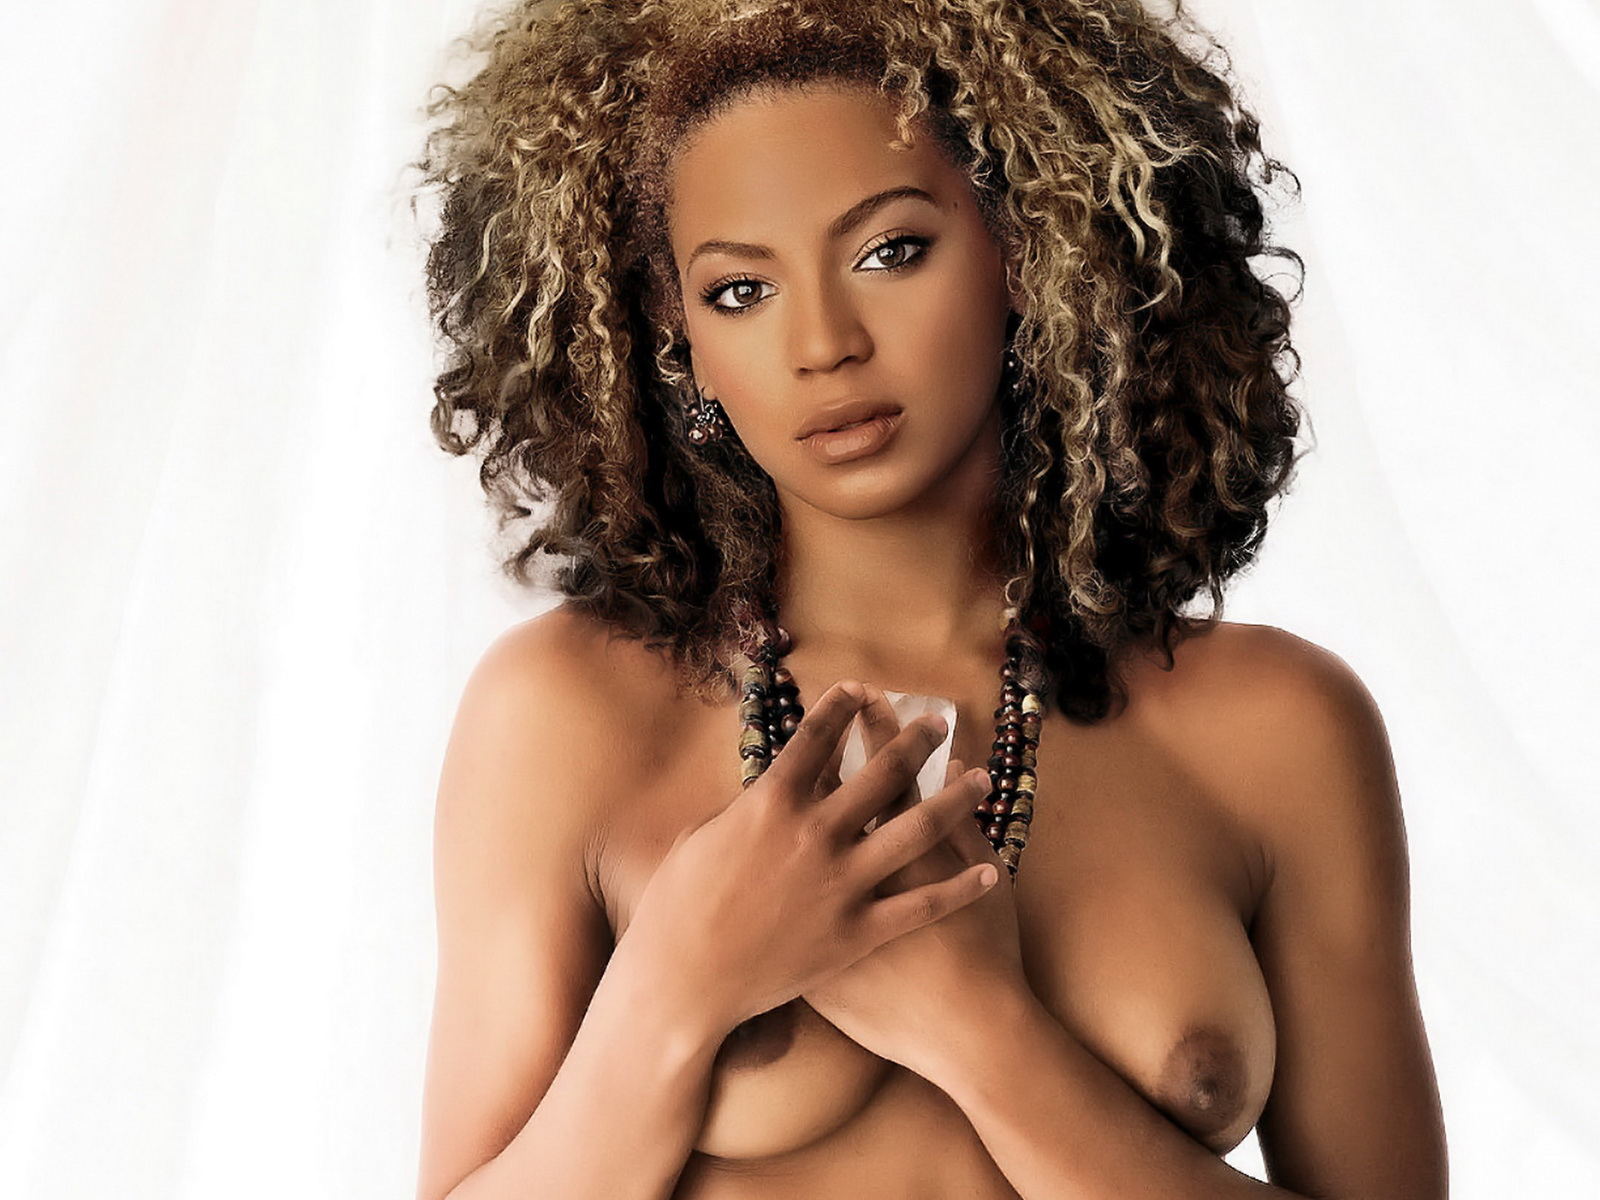 Pregnant beyonce poses nude in intimate photo shoot